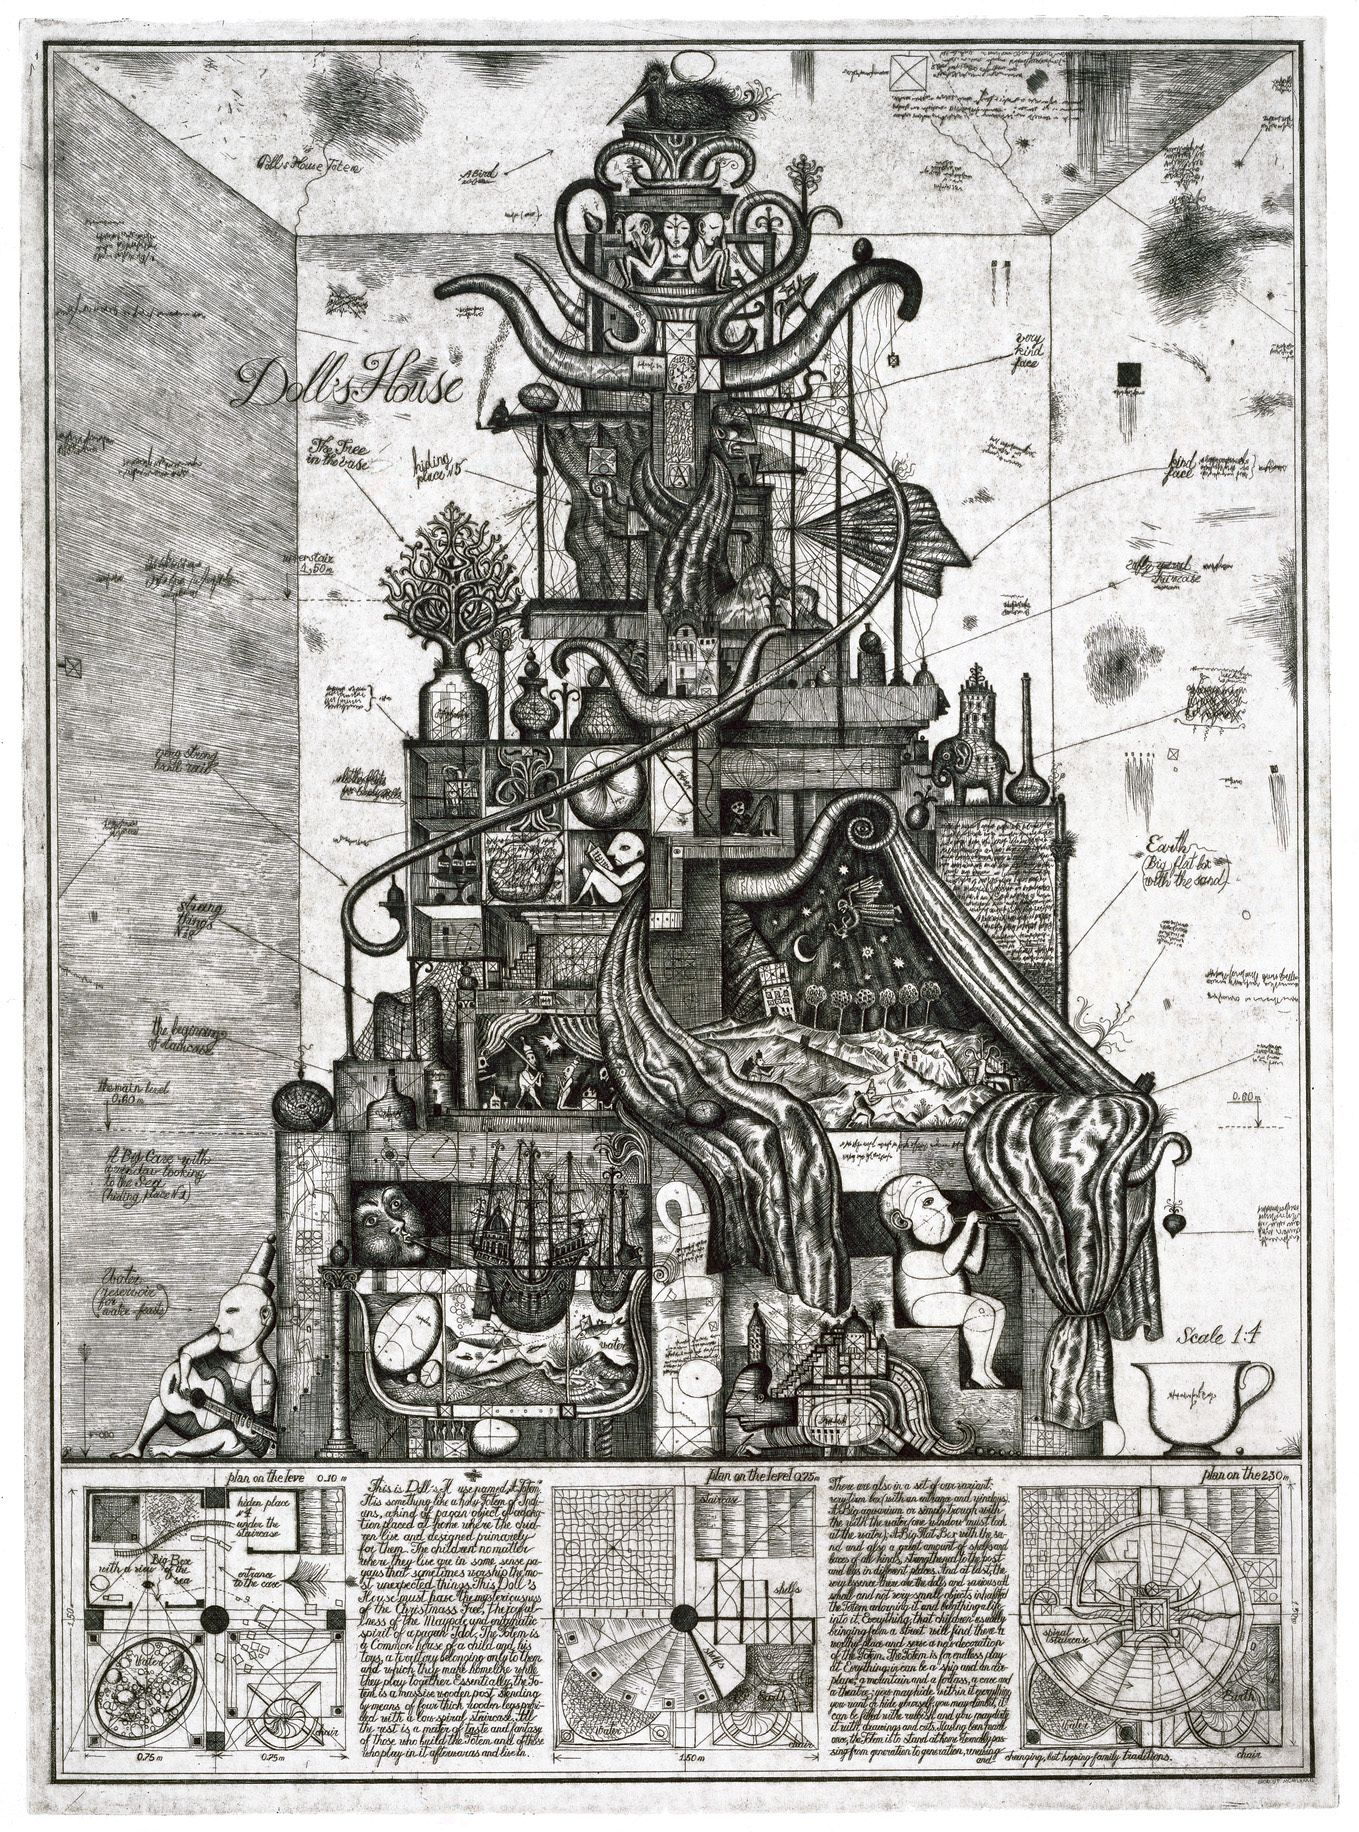 "Alexander Brodsky and Ilya Utkin: ""Doll's House"", 1990. Etching, 81 x 59 cm. From Architectural Design Competition, London, United Kingdom, 1982. Courtesy of Feldman Gallery, NY"